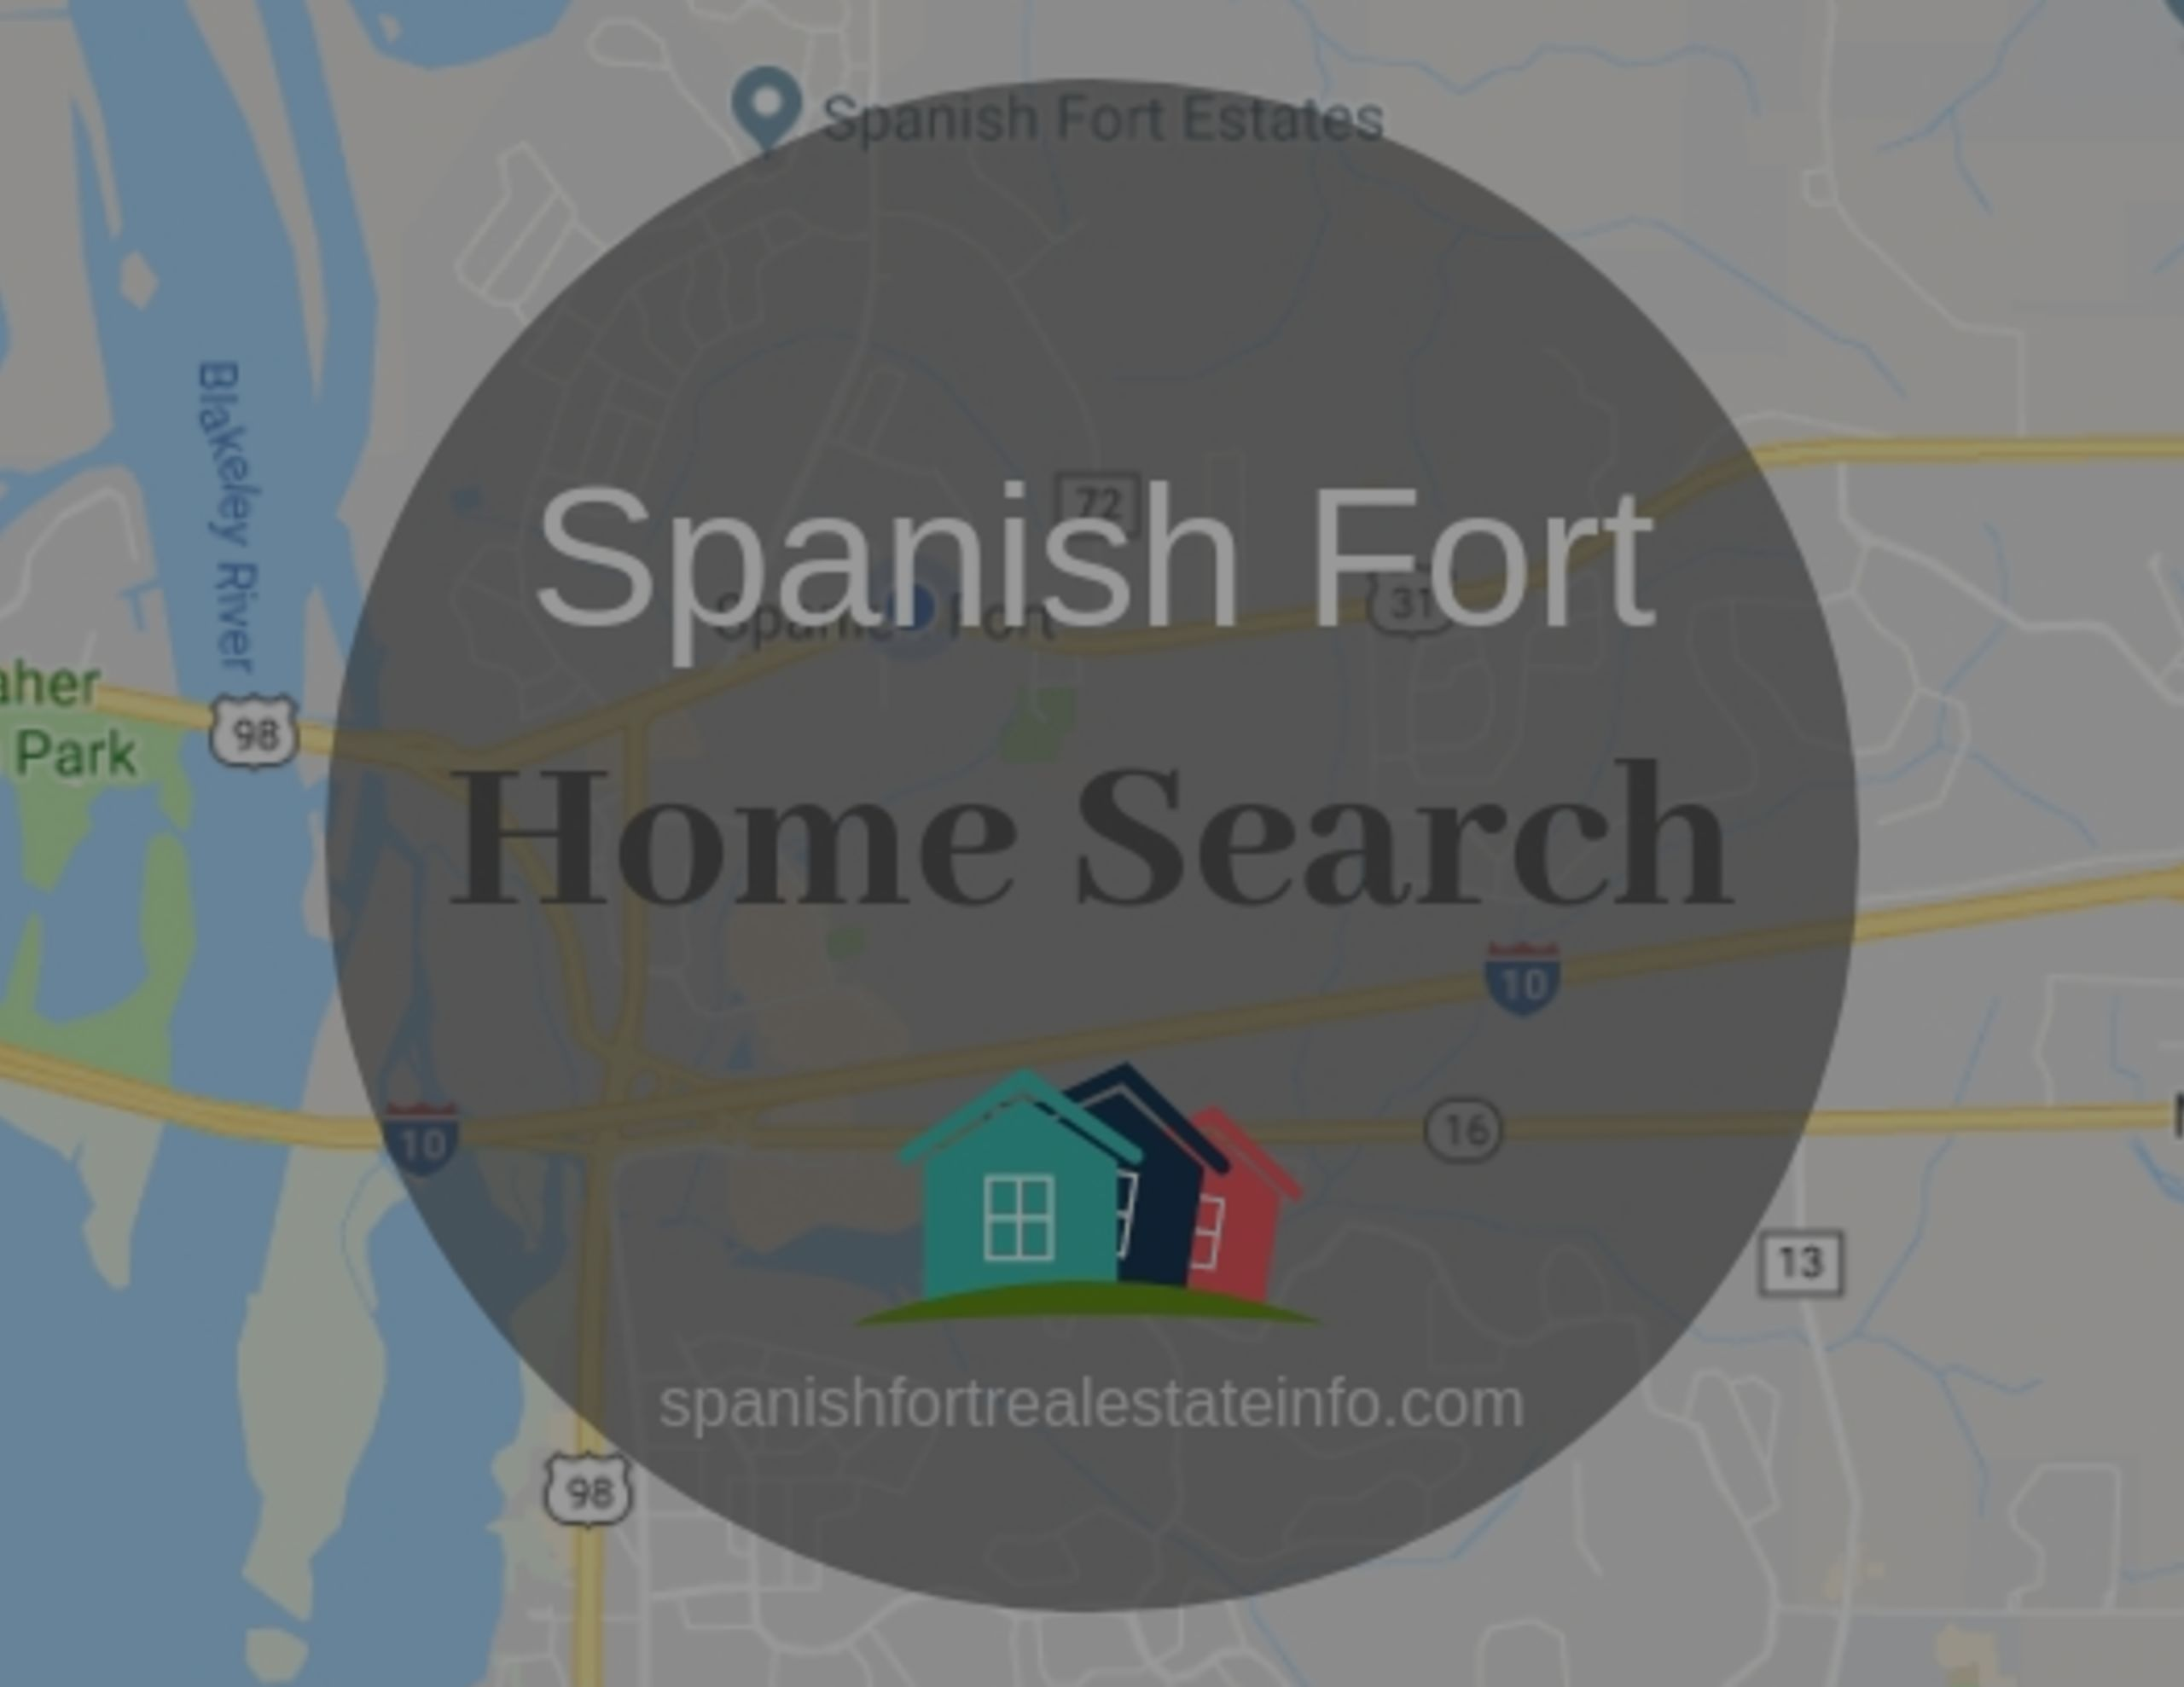 Spanish Fort Home Search